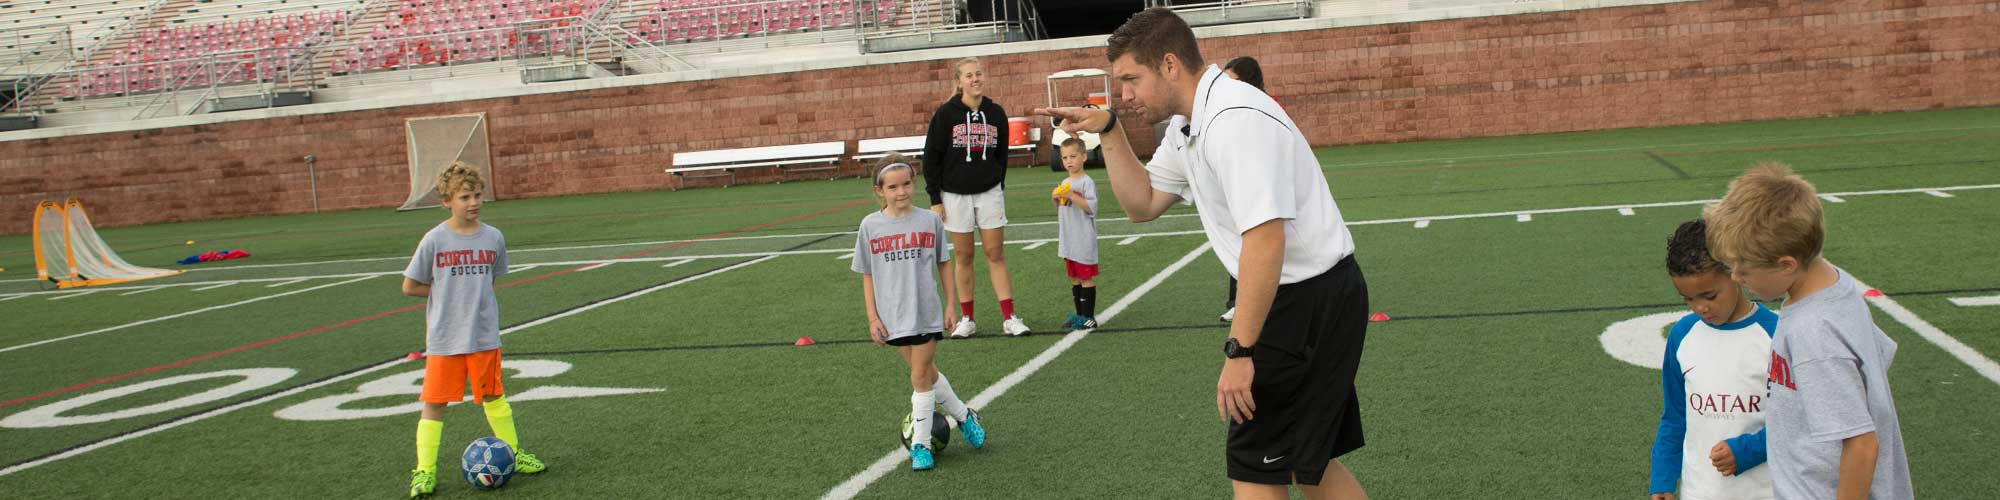 Soccer camp coach leads young campers in drills.